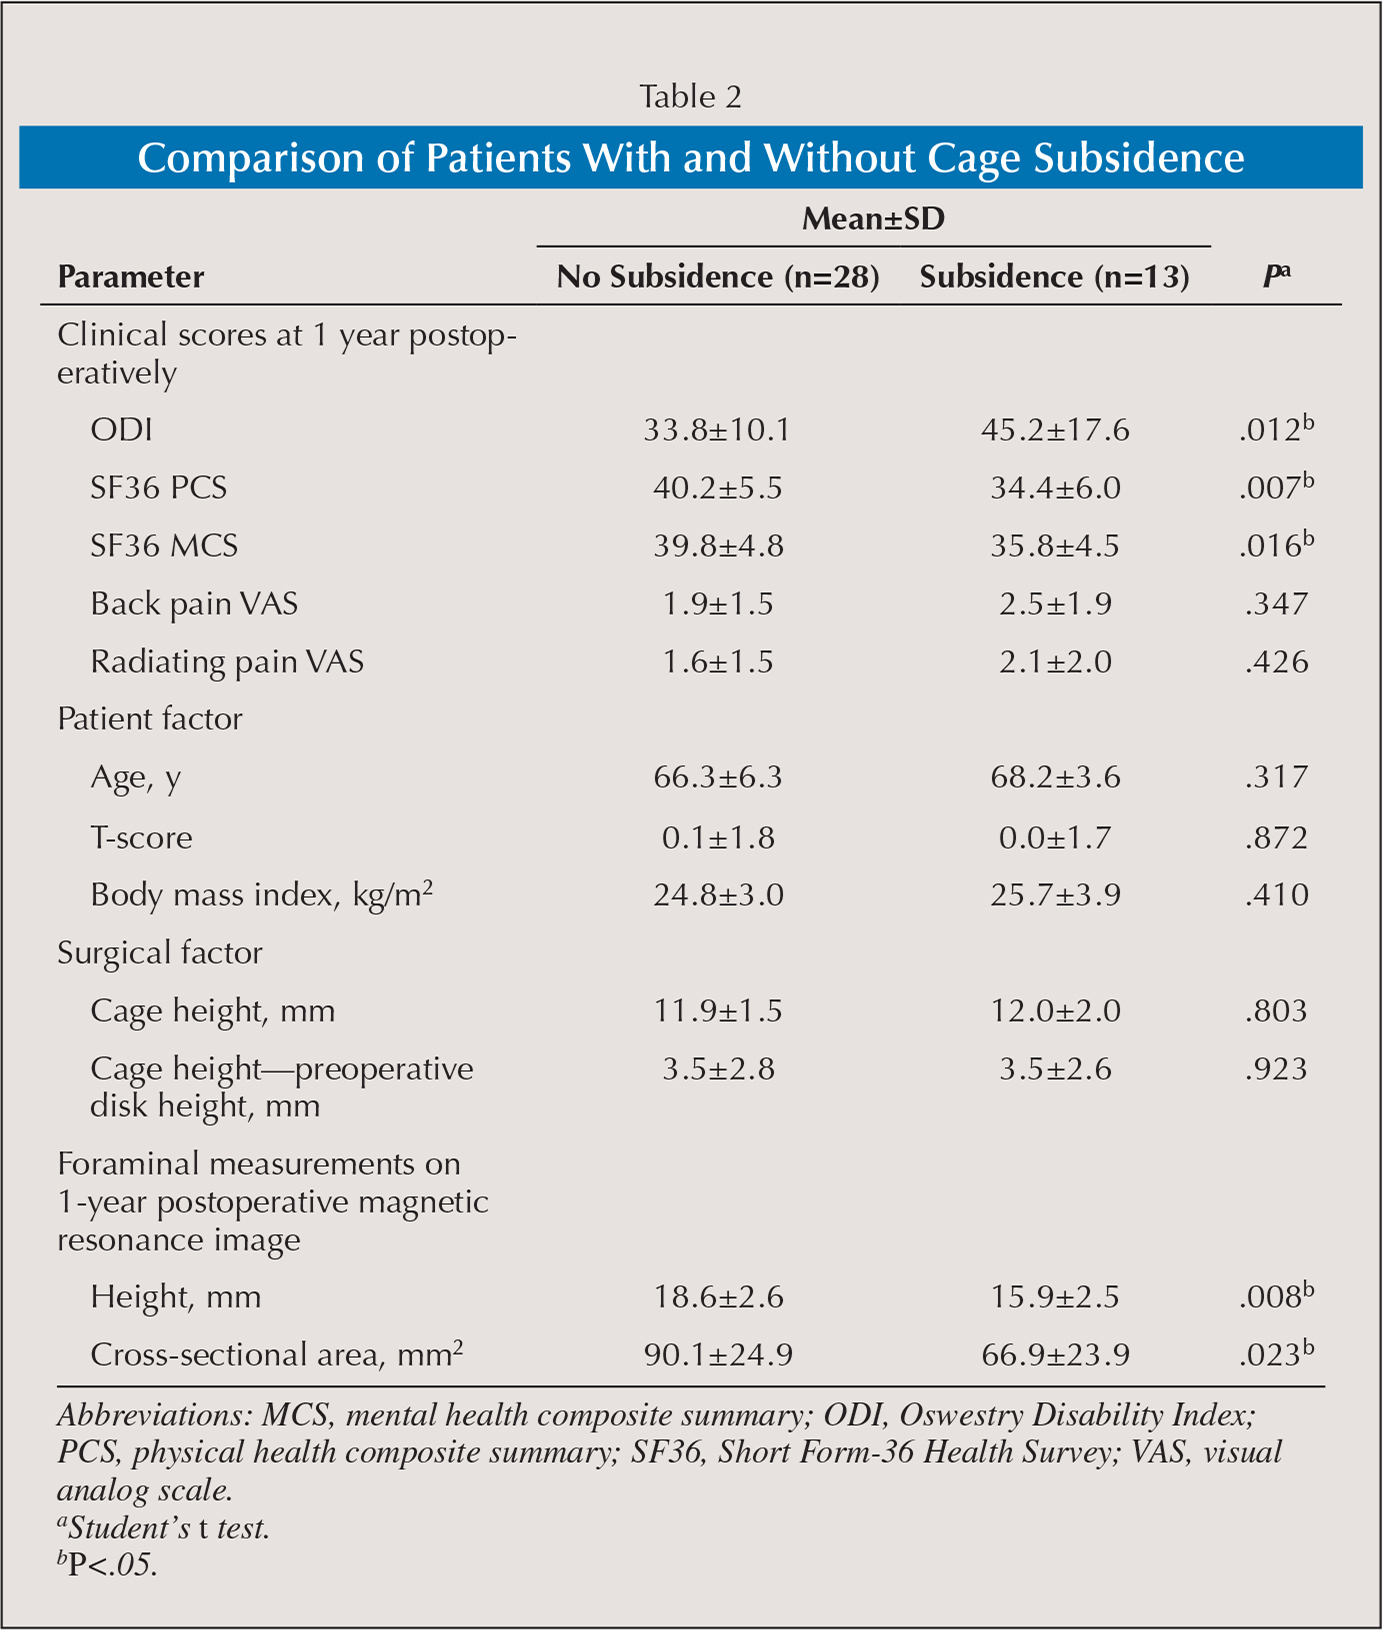 Comparison of Patients With and Without Cage Subsidence